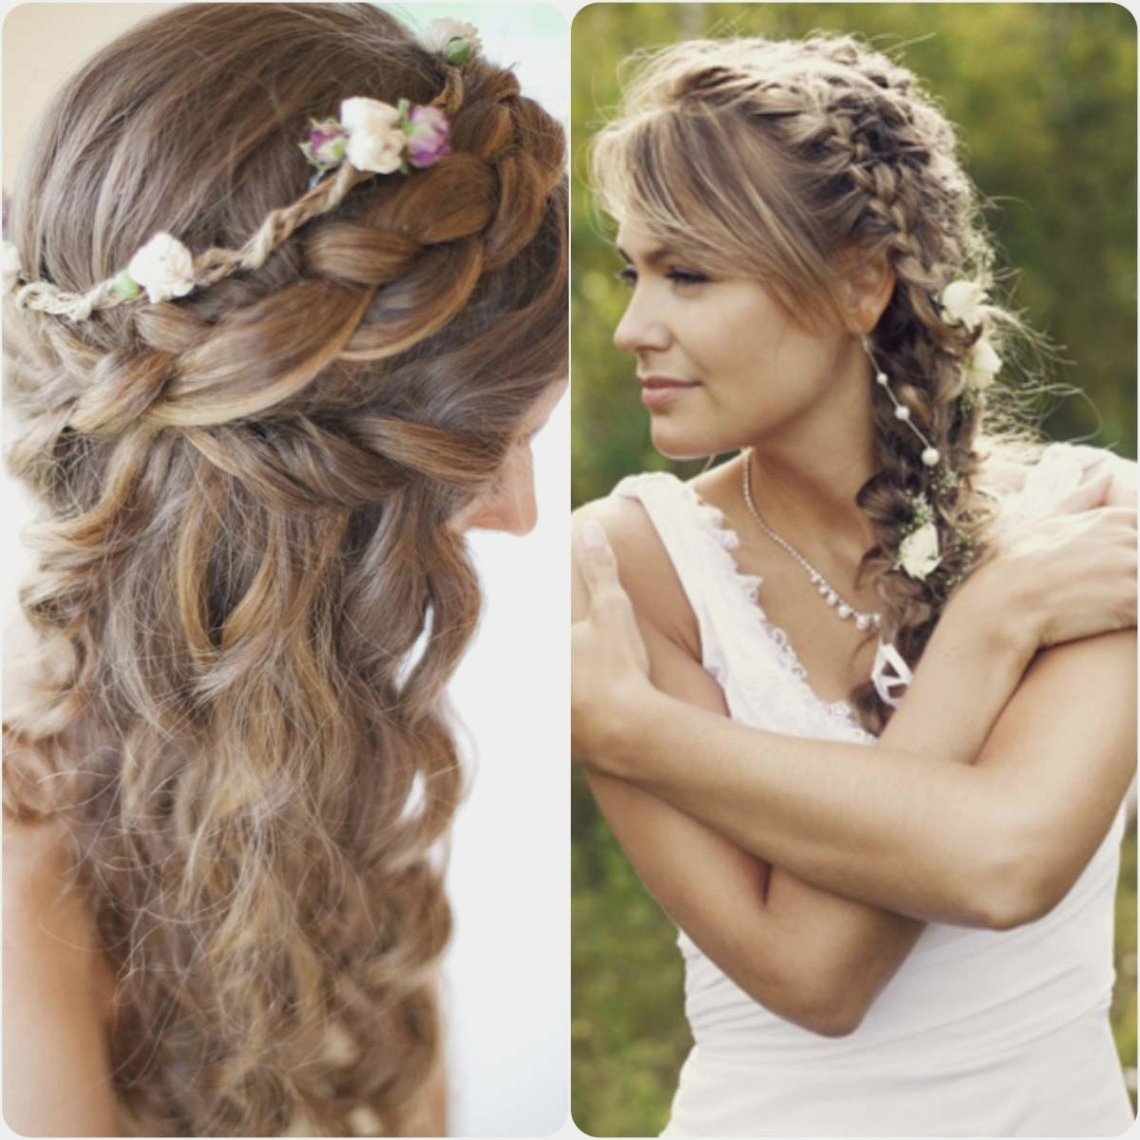 Brides – Wedding Hair Side Braid Pertaining To Most Recent Side Braid Wedding Hairstyles (View 7 of 15)